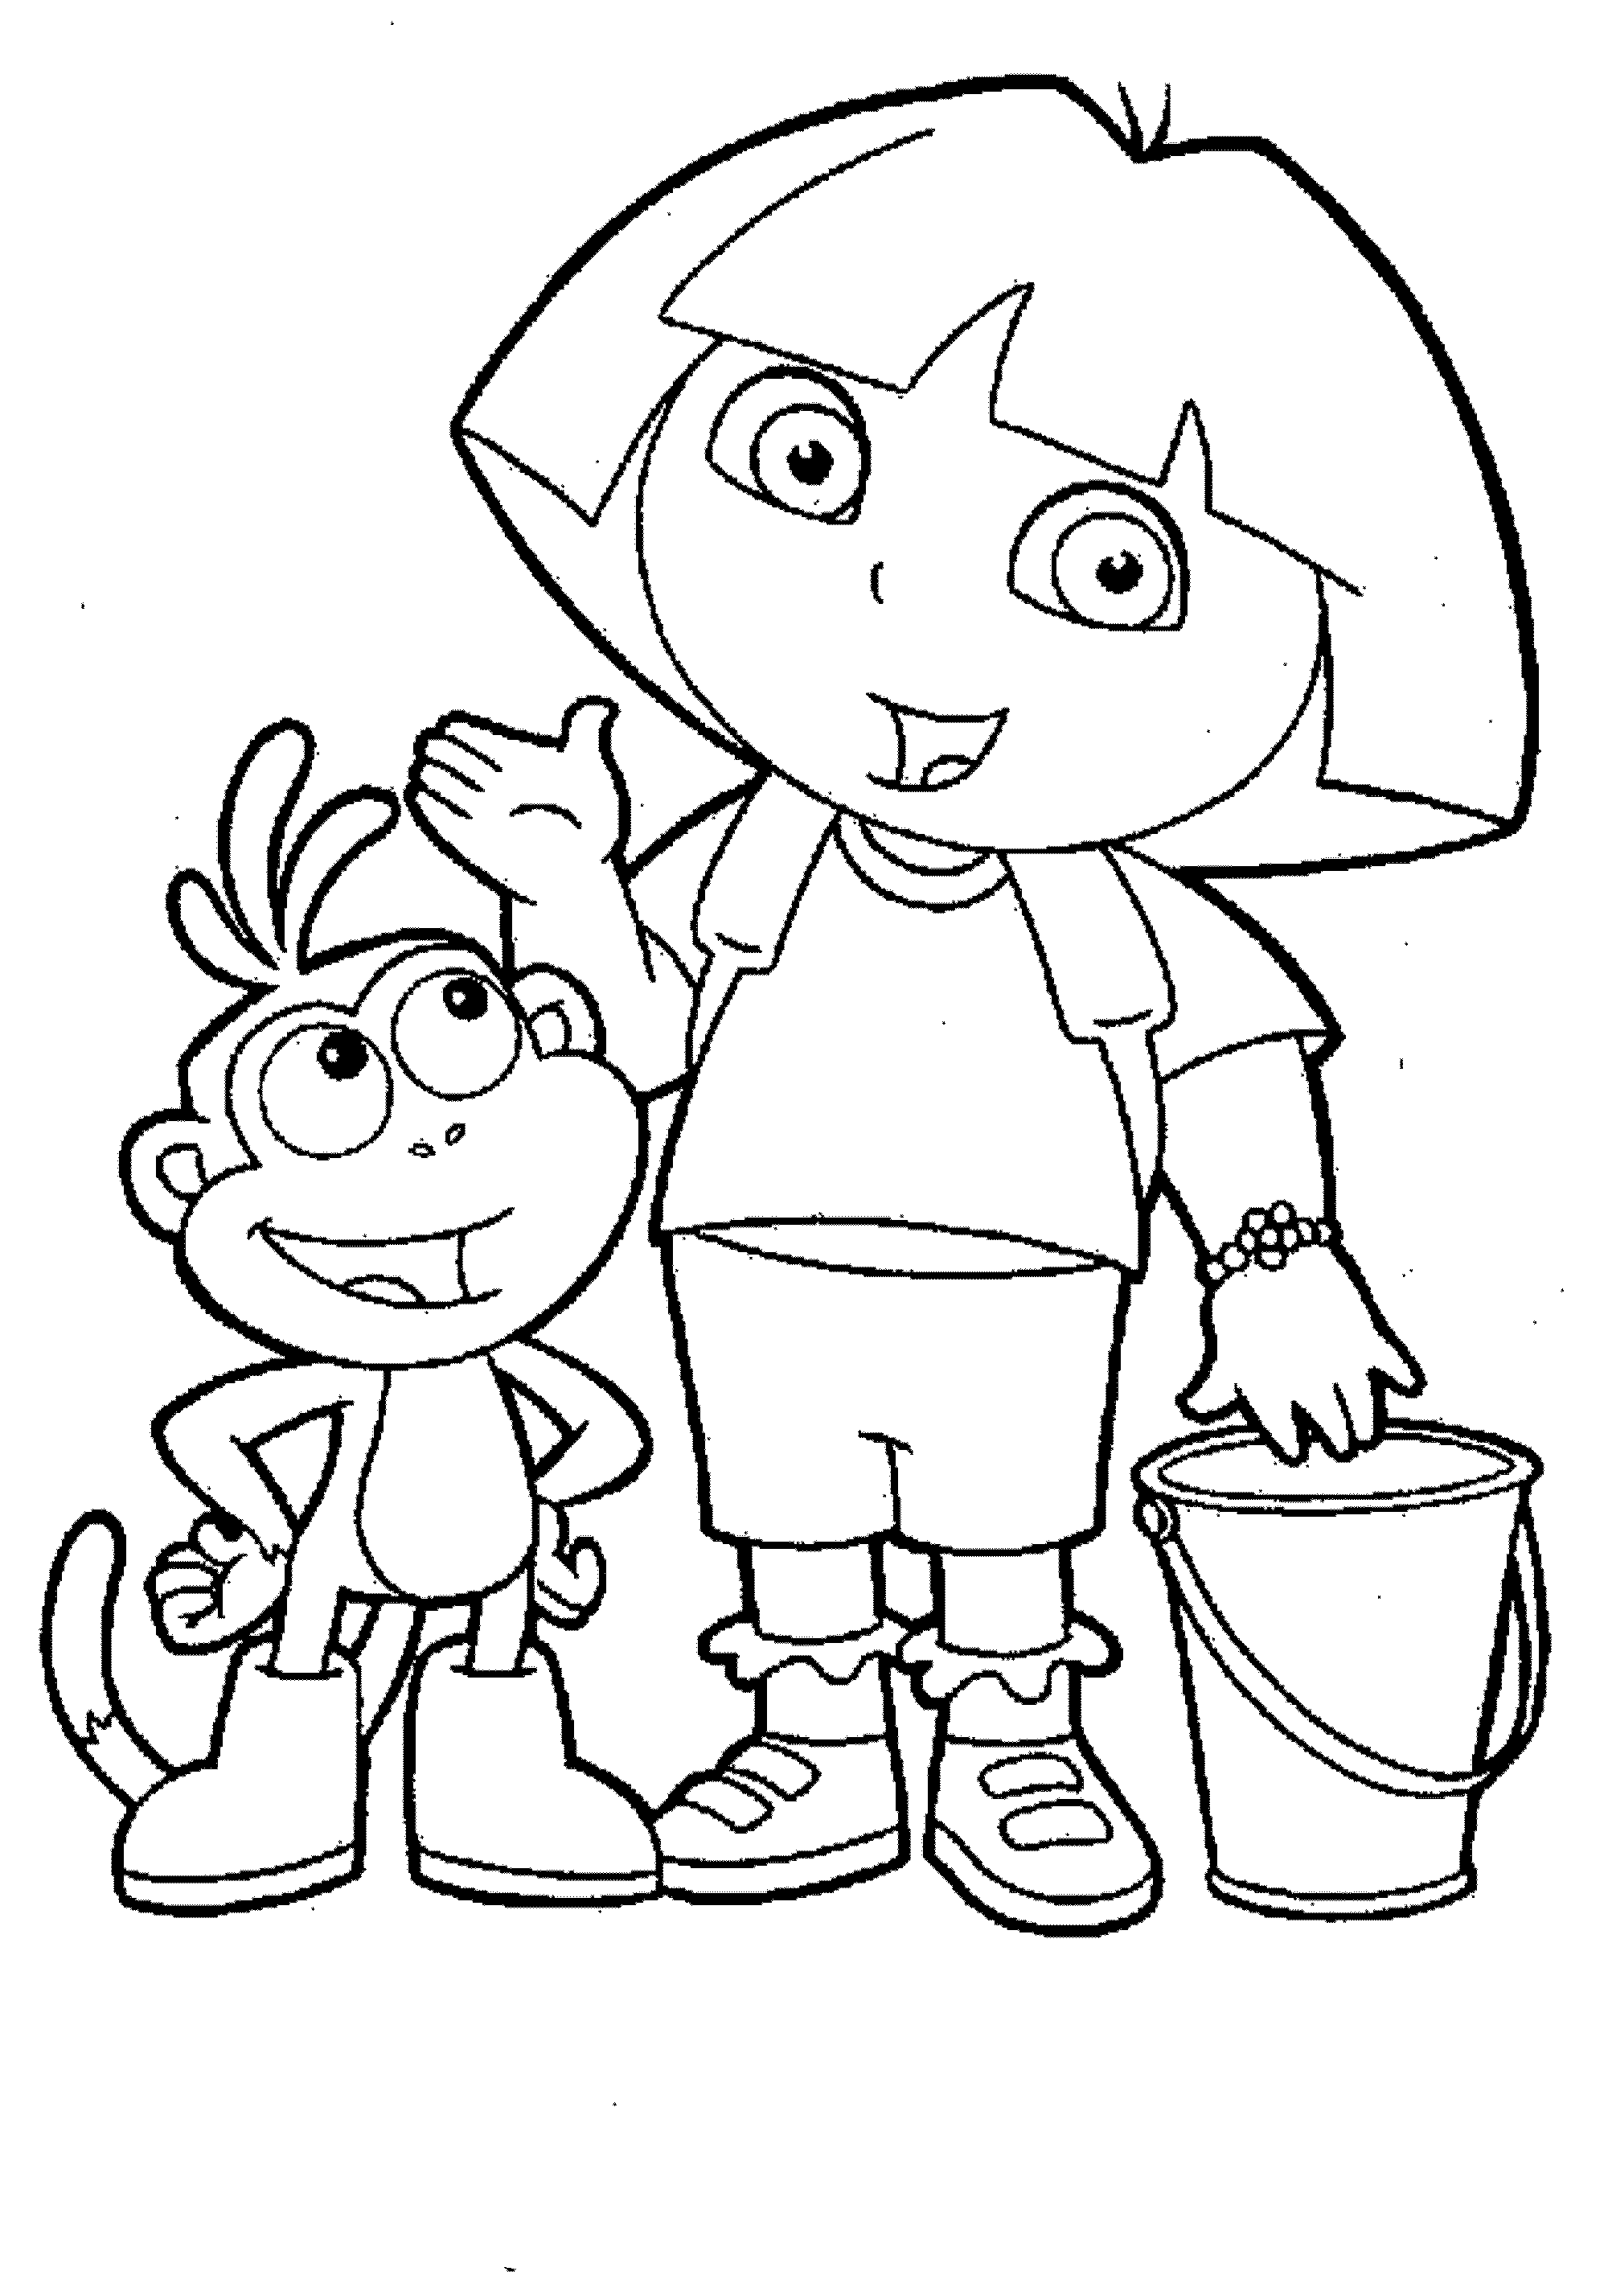 printable dora coloring pages dora the explorer printable coloring pages hubpages coloring printable dora pages